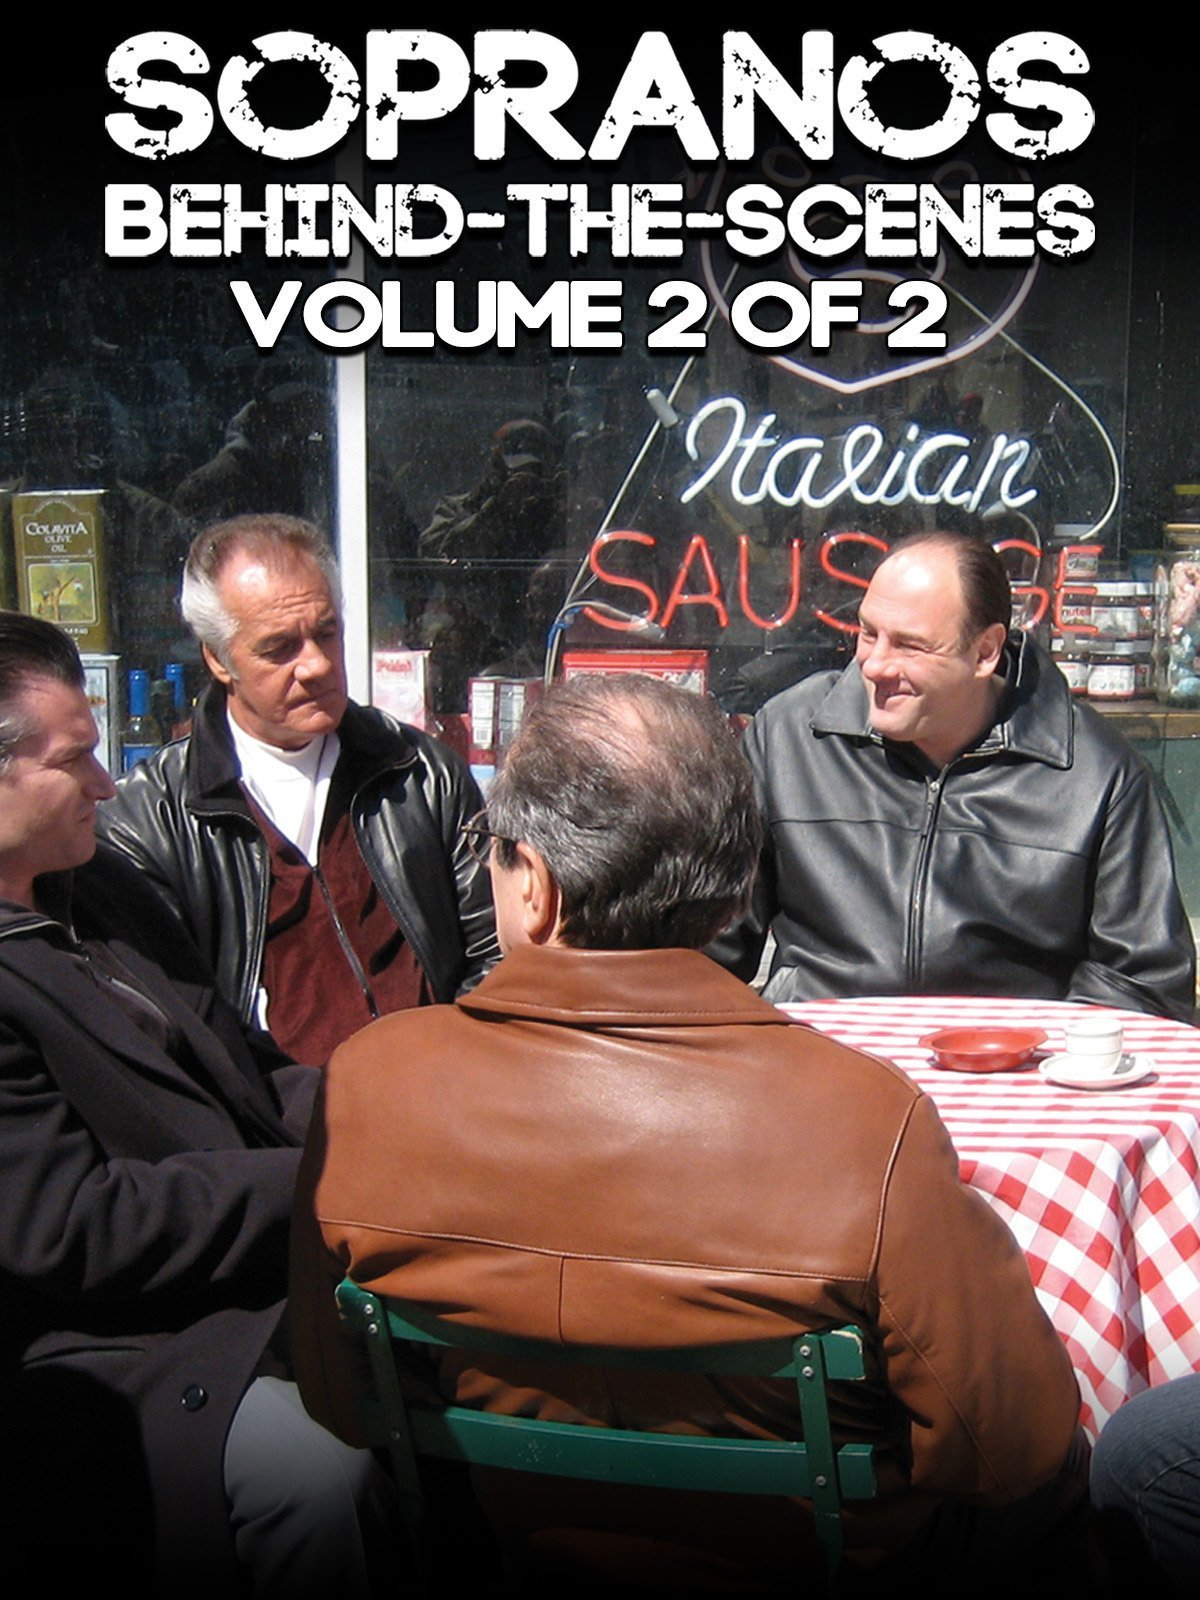 Sopranos Behind-The-Scenes Volume 2 of 2